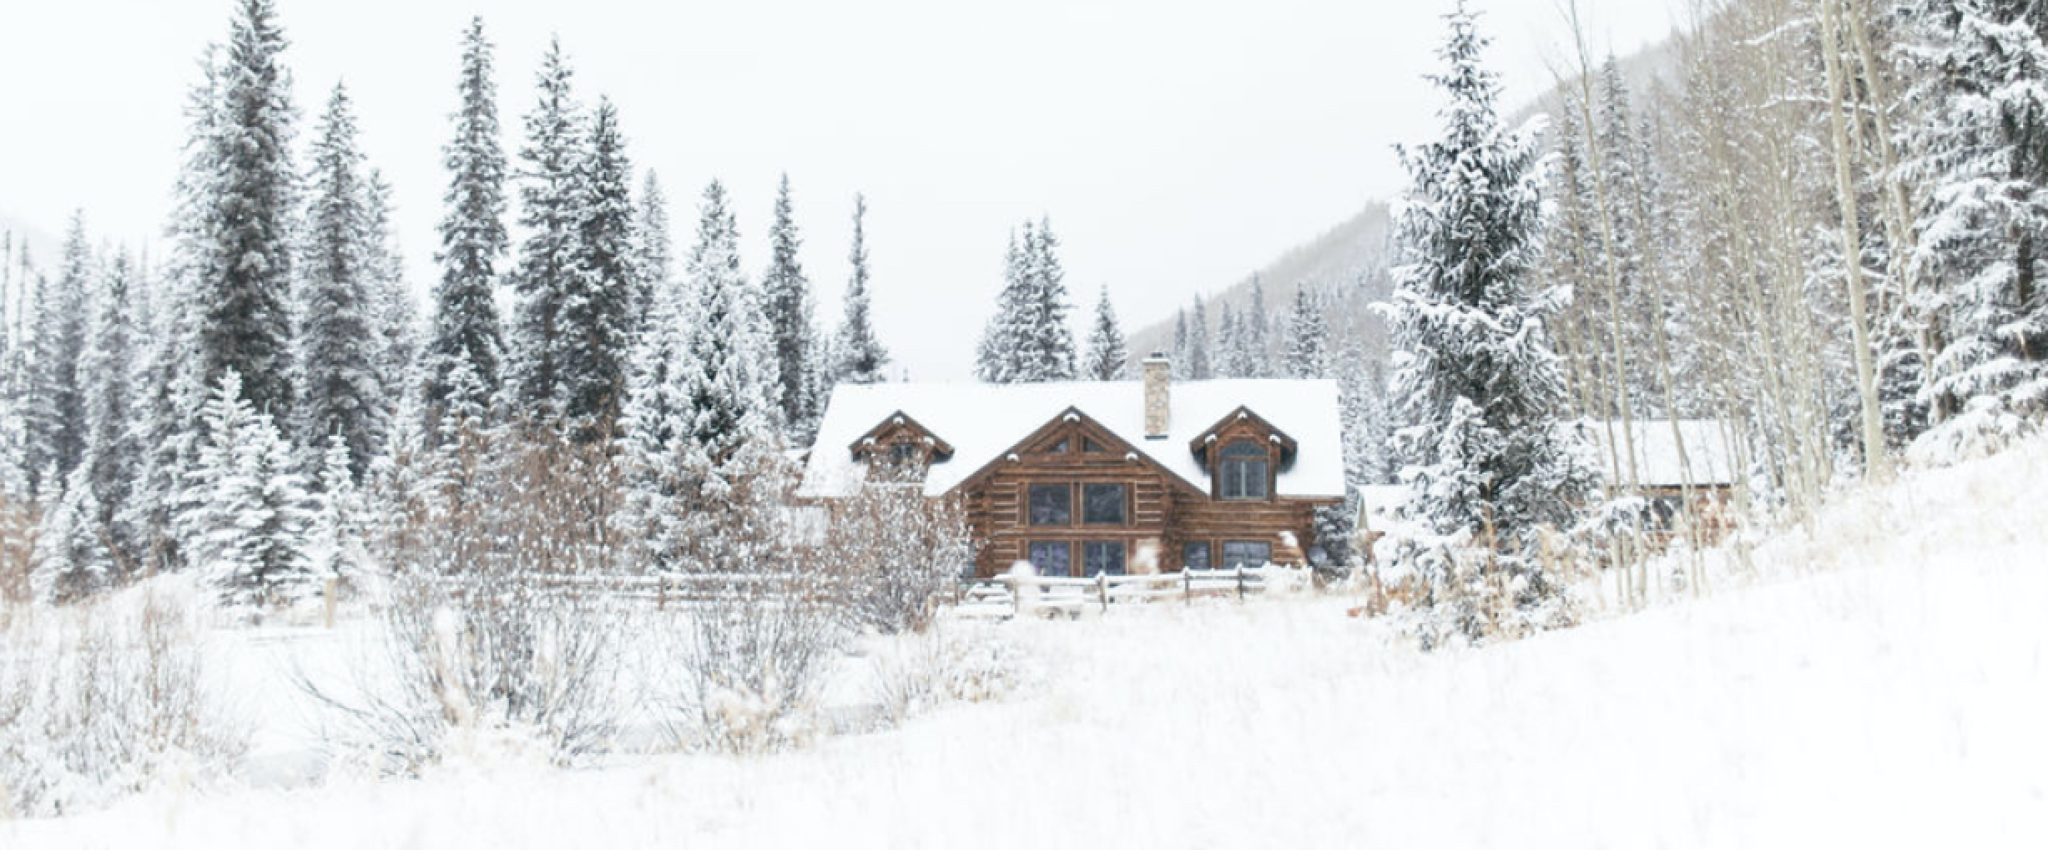 STAR PEAK LODGE